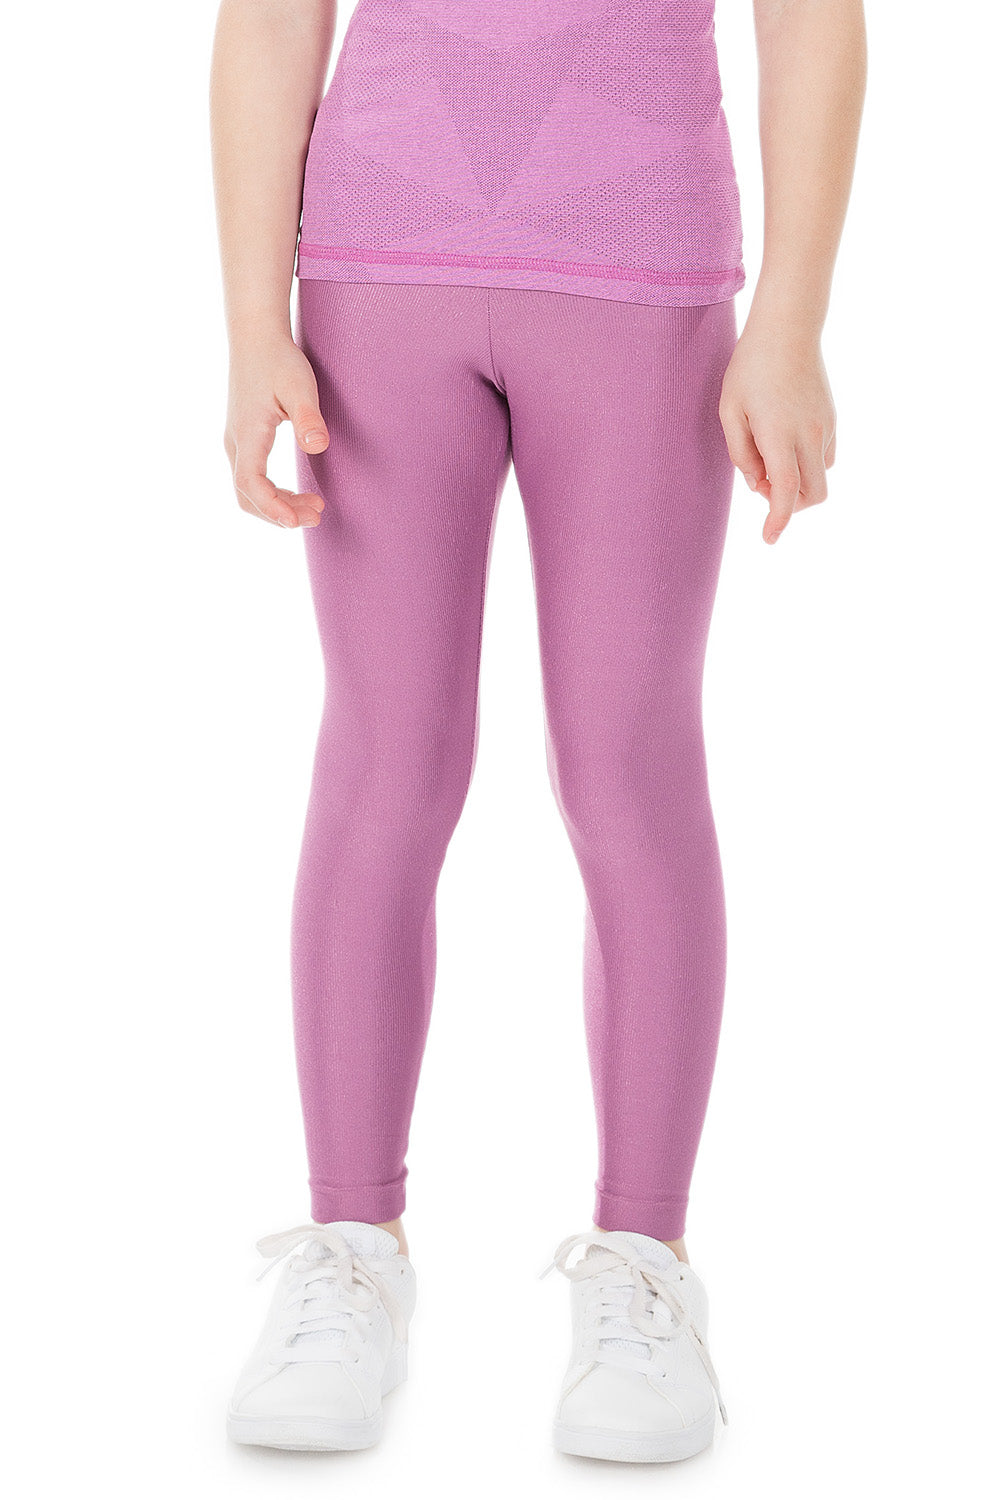 Fearless Kids Legging 1